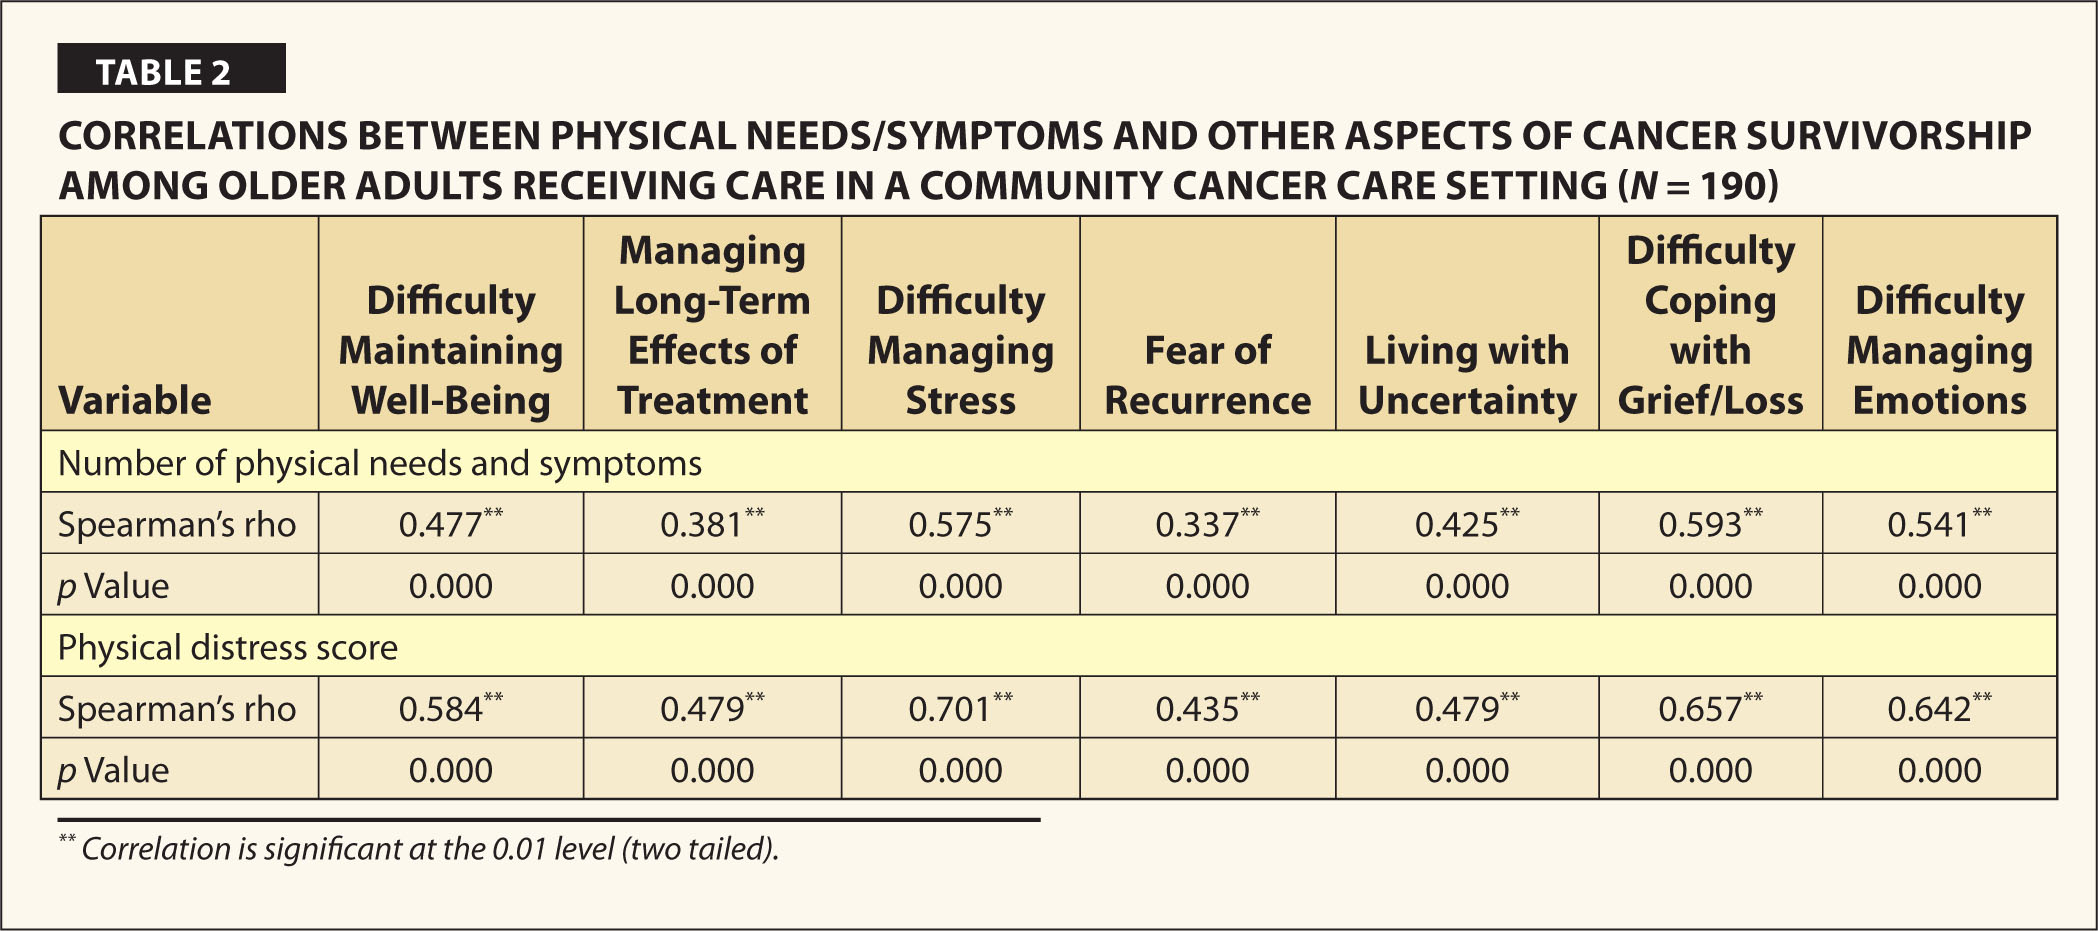 Correlations Between Physical Needs/symptoms and Other Aspects of Cancer Survivorship Among Older Adults Receiving Care in a Community Cancer Care Setting (N = 190)